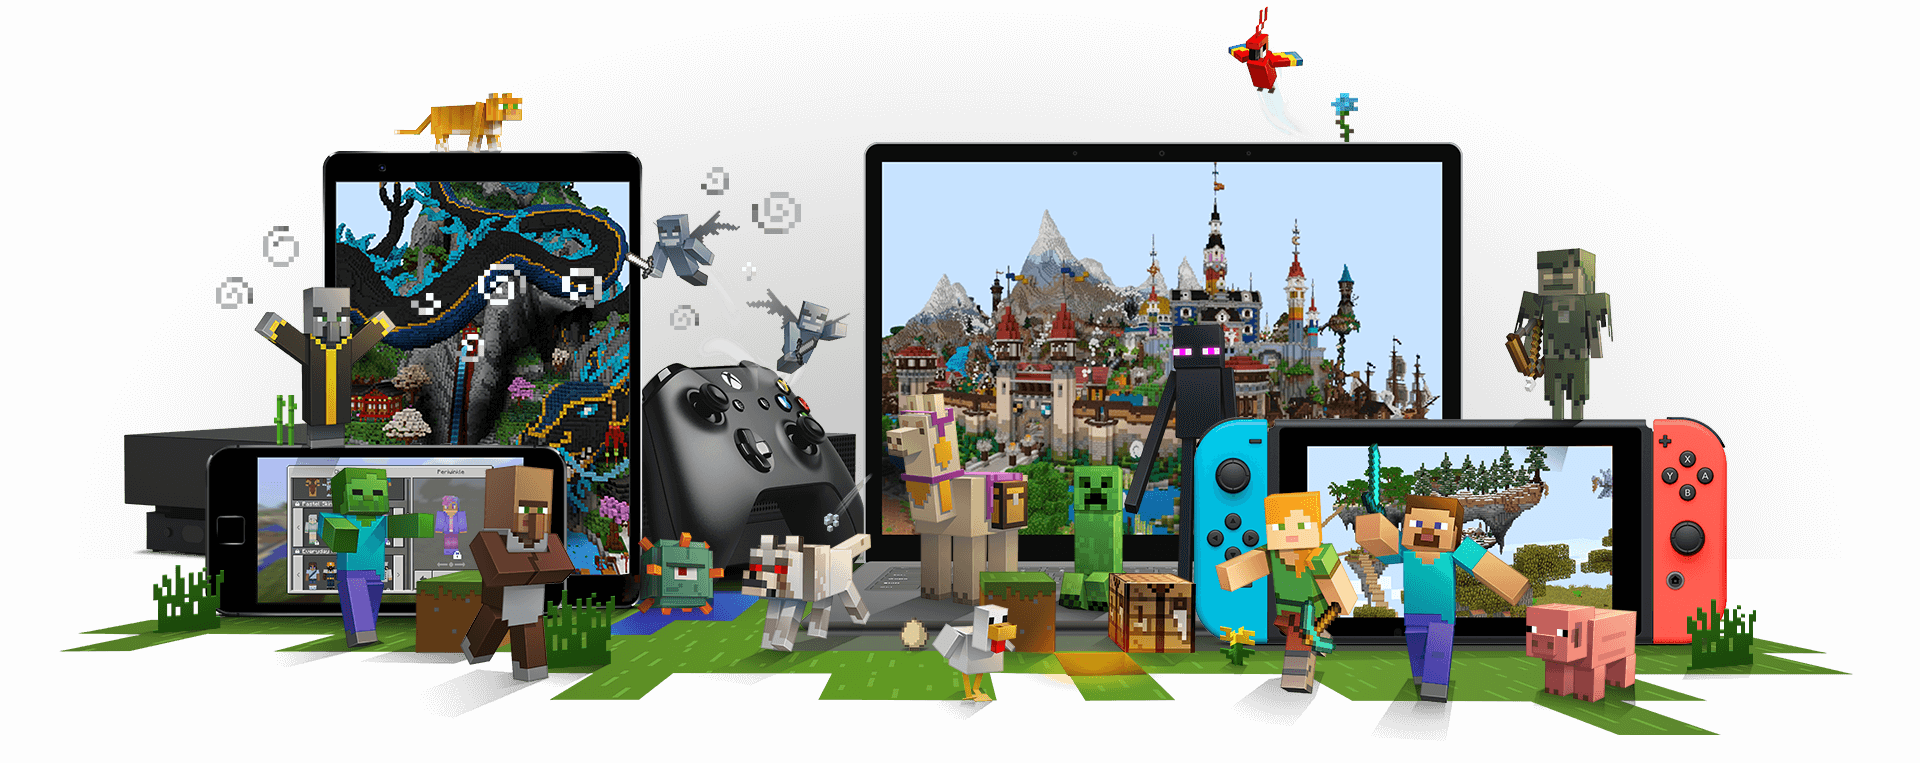 scene with rows of smart phones with Minecraft characters standing on and around them